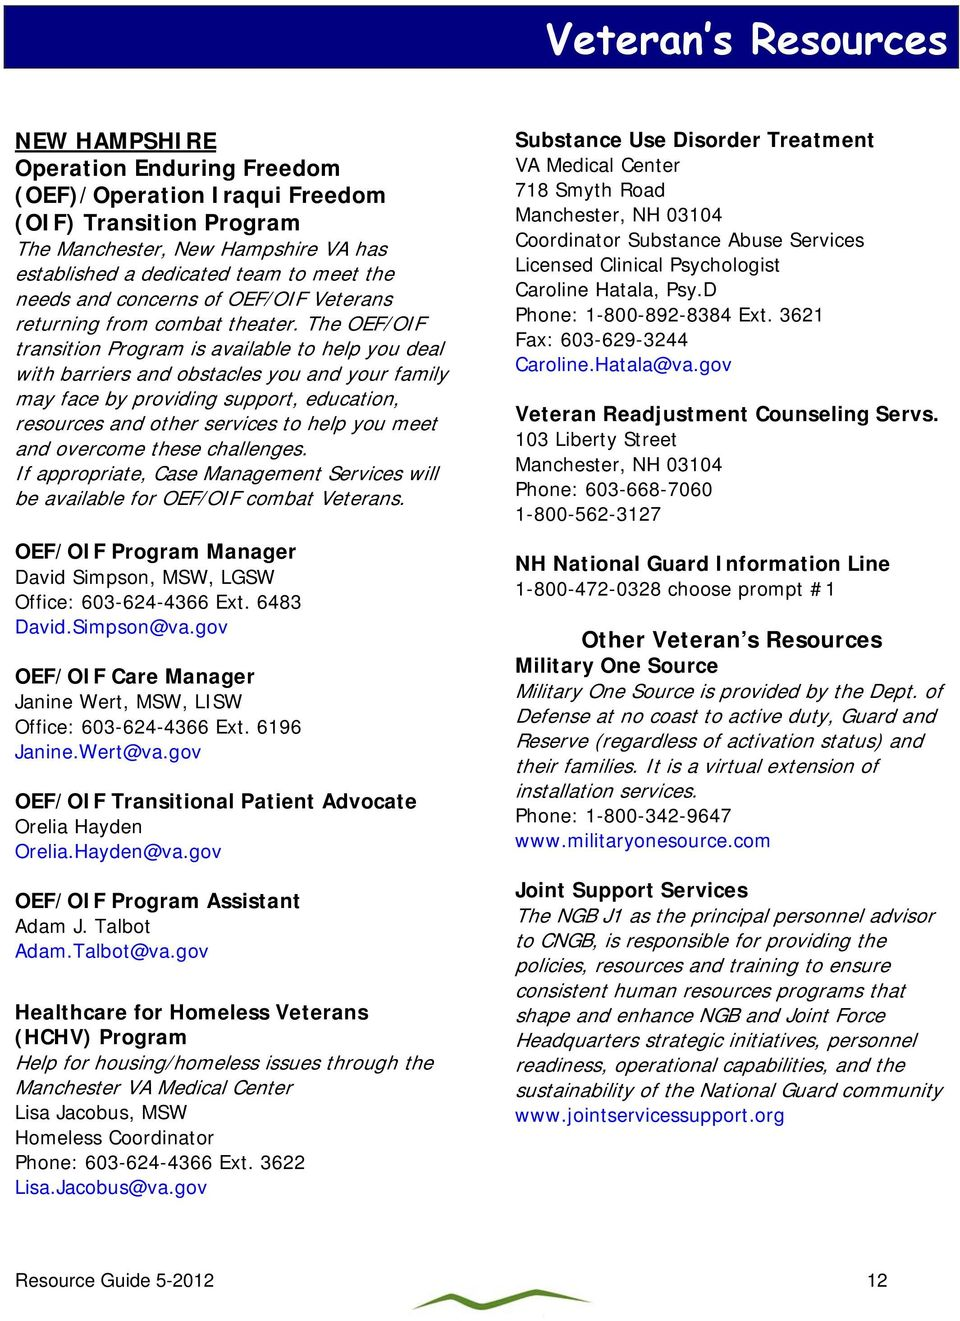 The OEF/OIF transition Program is available to help you deal with barriers and obstacles you and your family may face by providing support, education, resources and other services to help you meet